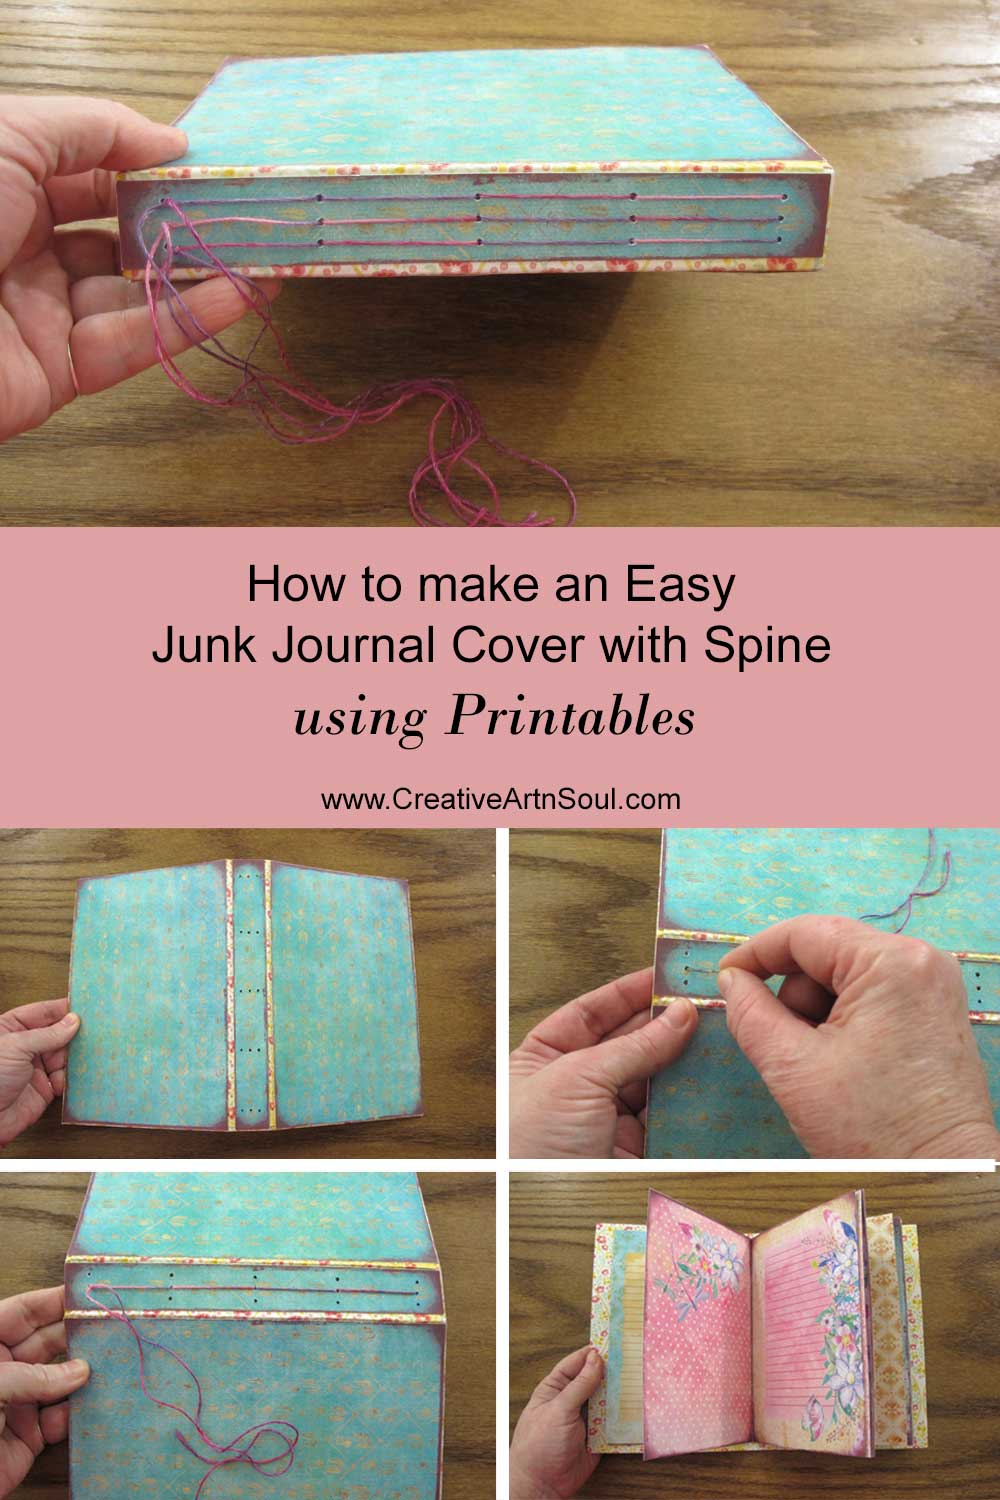 Printable Journal with Spine: Basic Tutorial